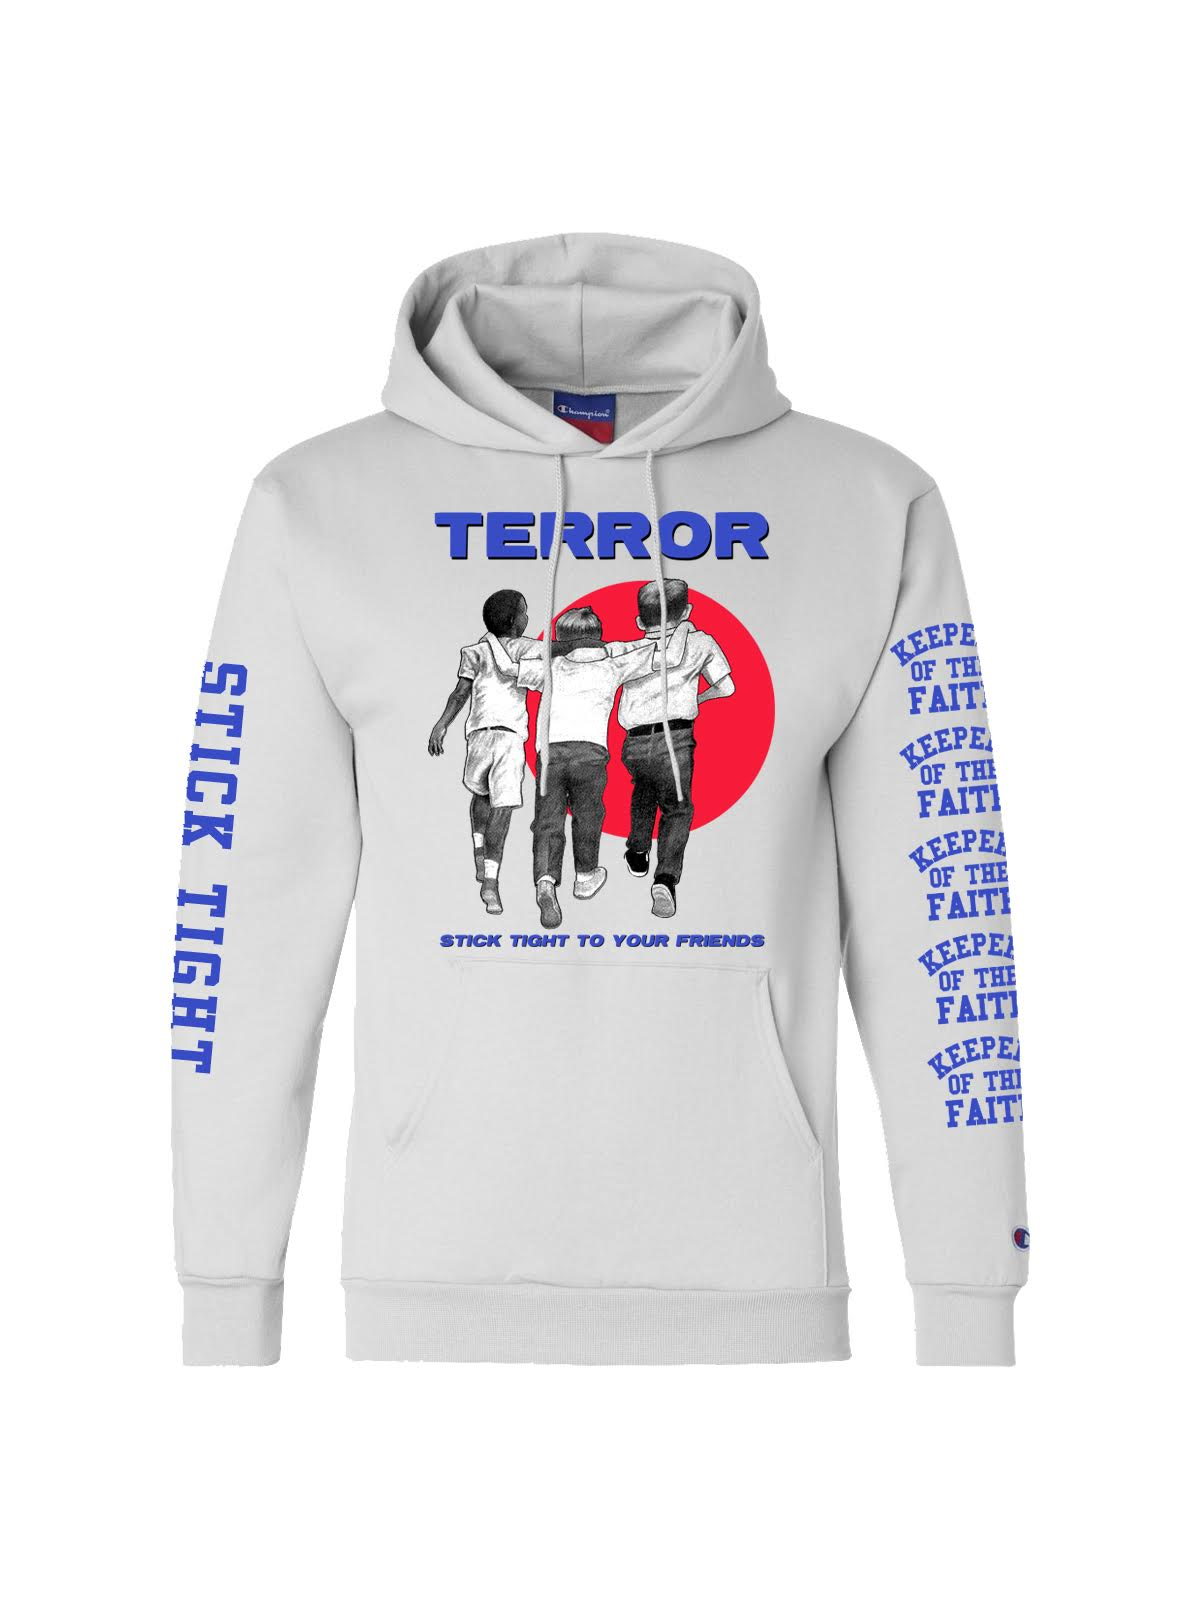 Terror - Stick Tight Champion Hoodie (White) - SHIPS APRIL 18 - Merch Limited